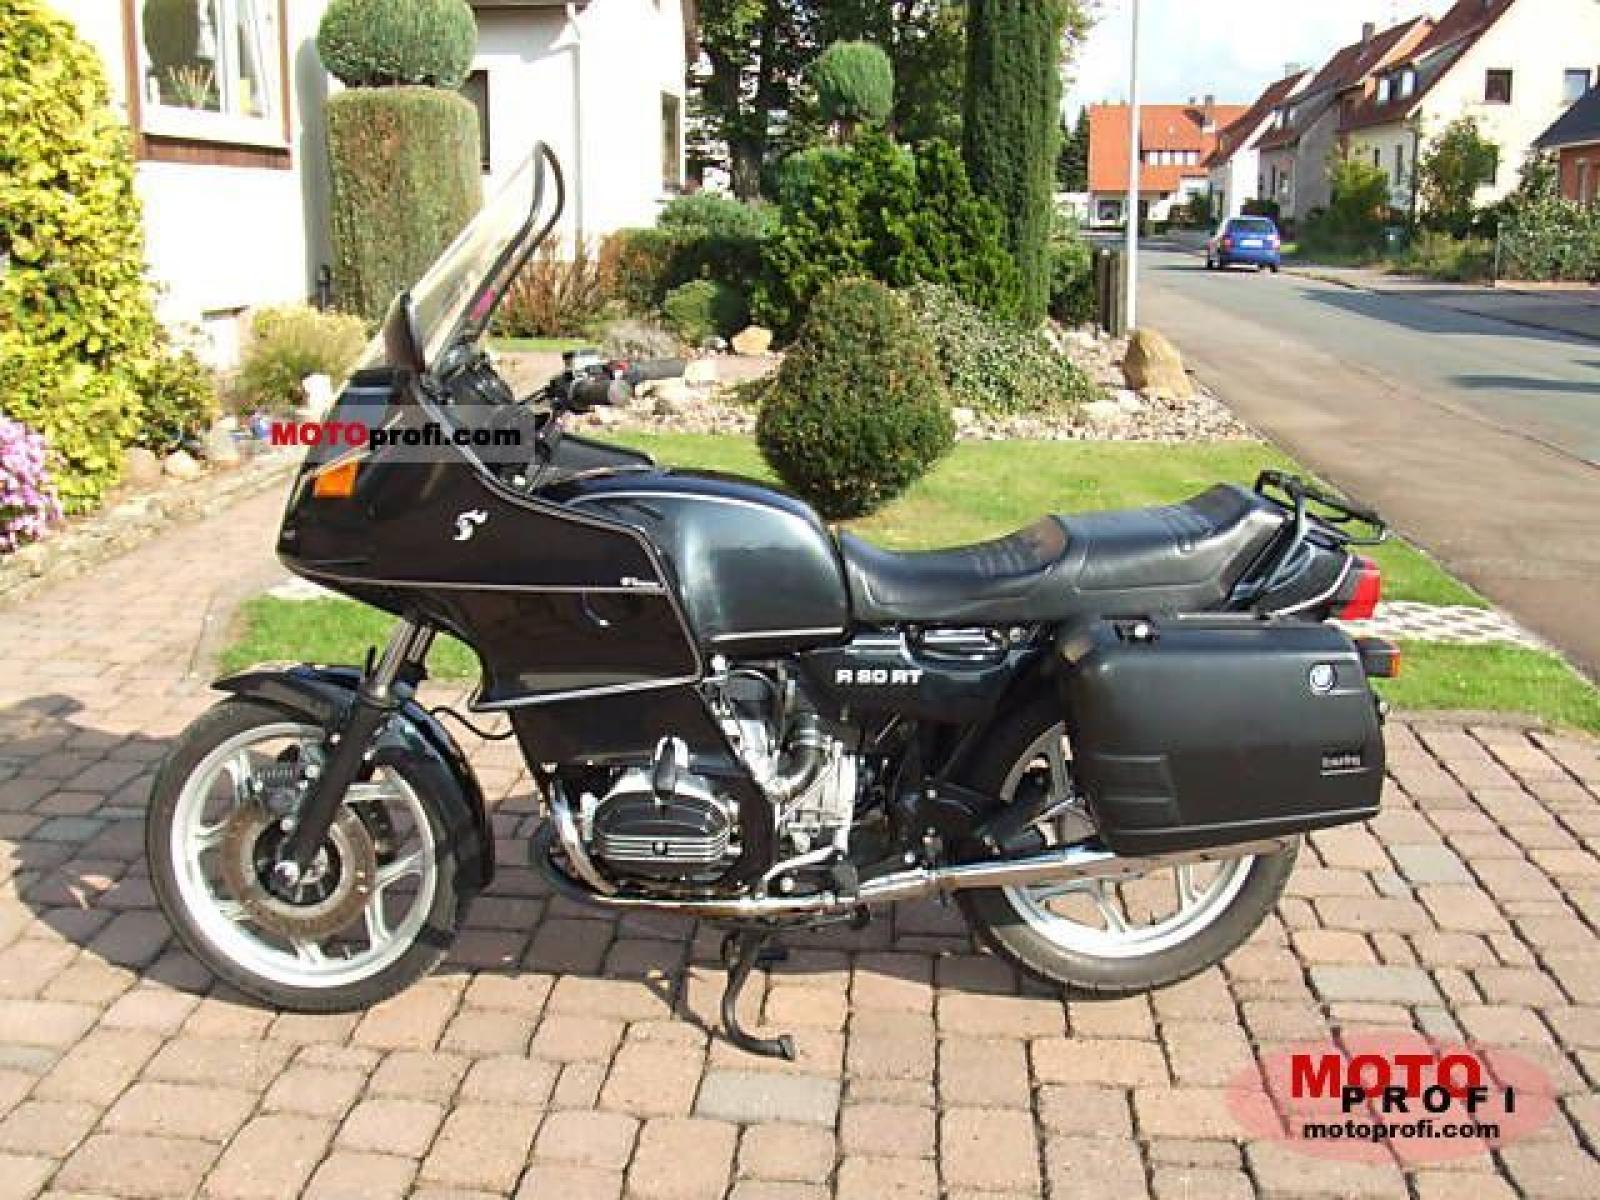 BMW R45 (reduced effect) 1985 images #77168